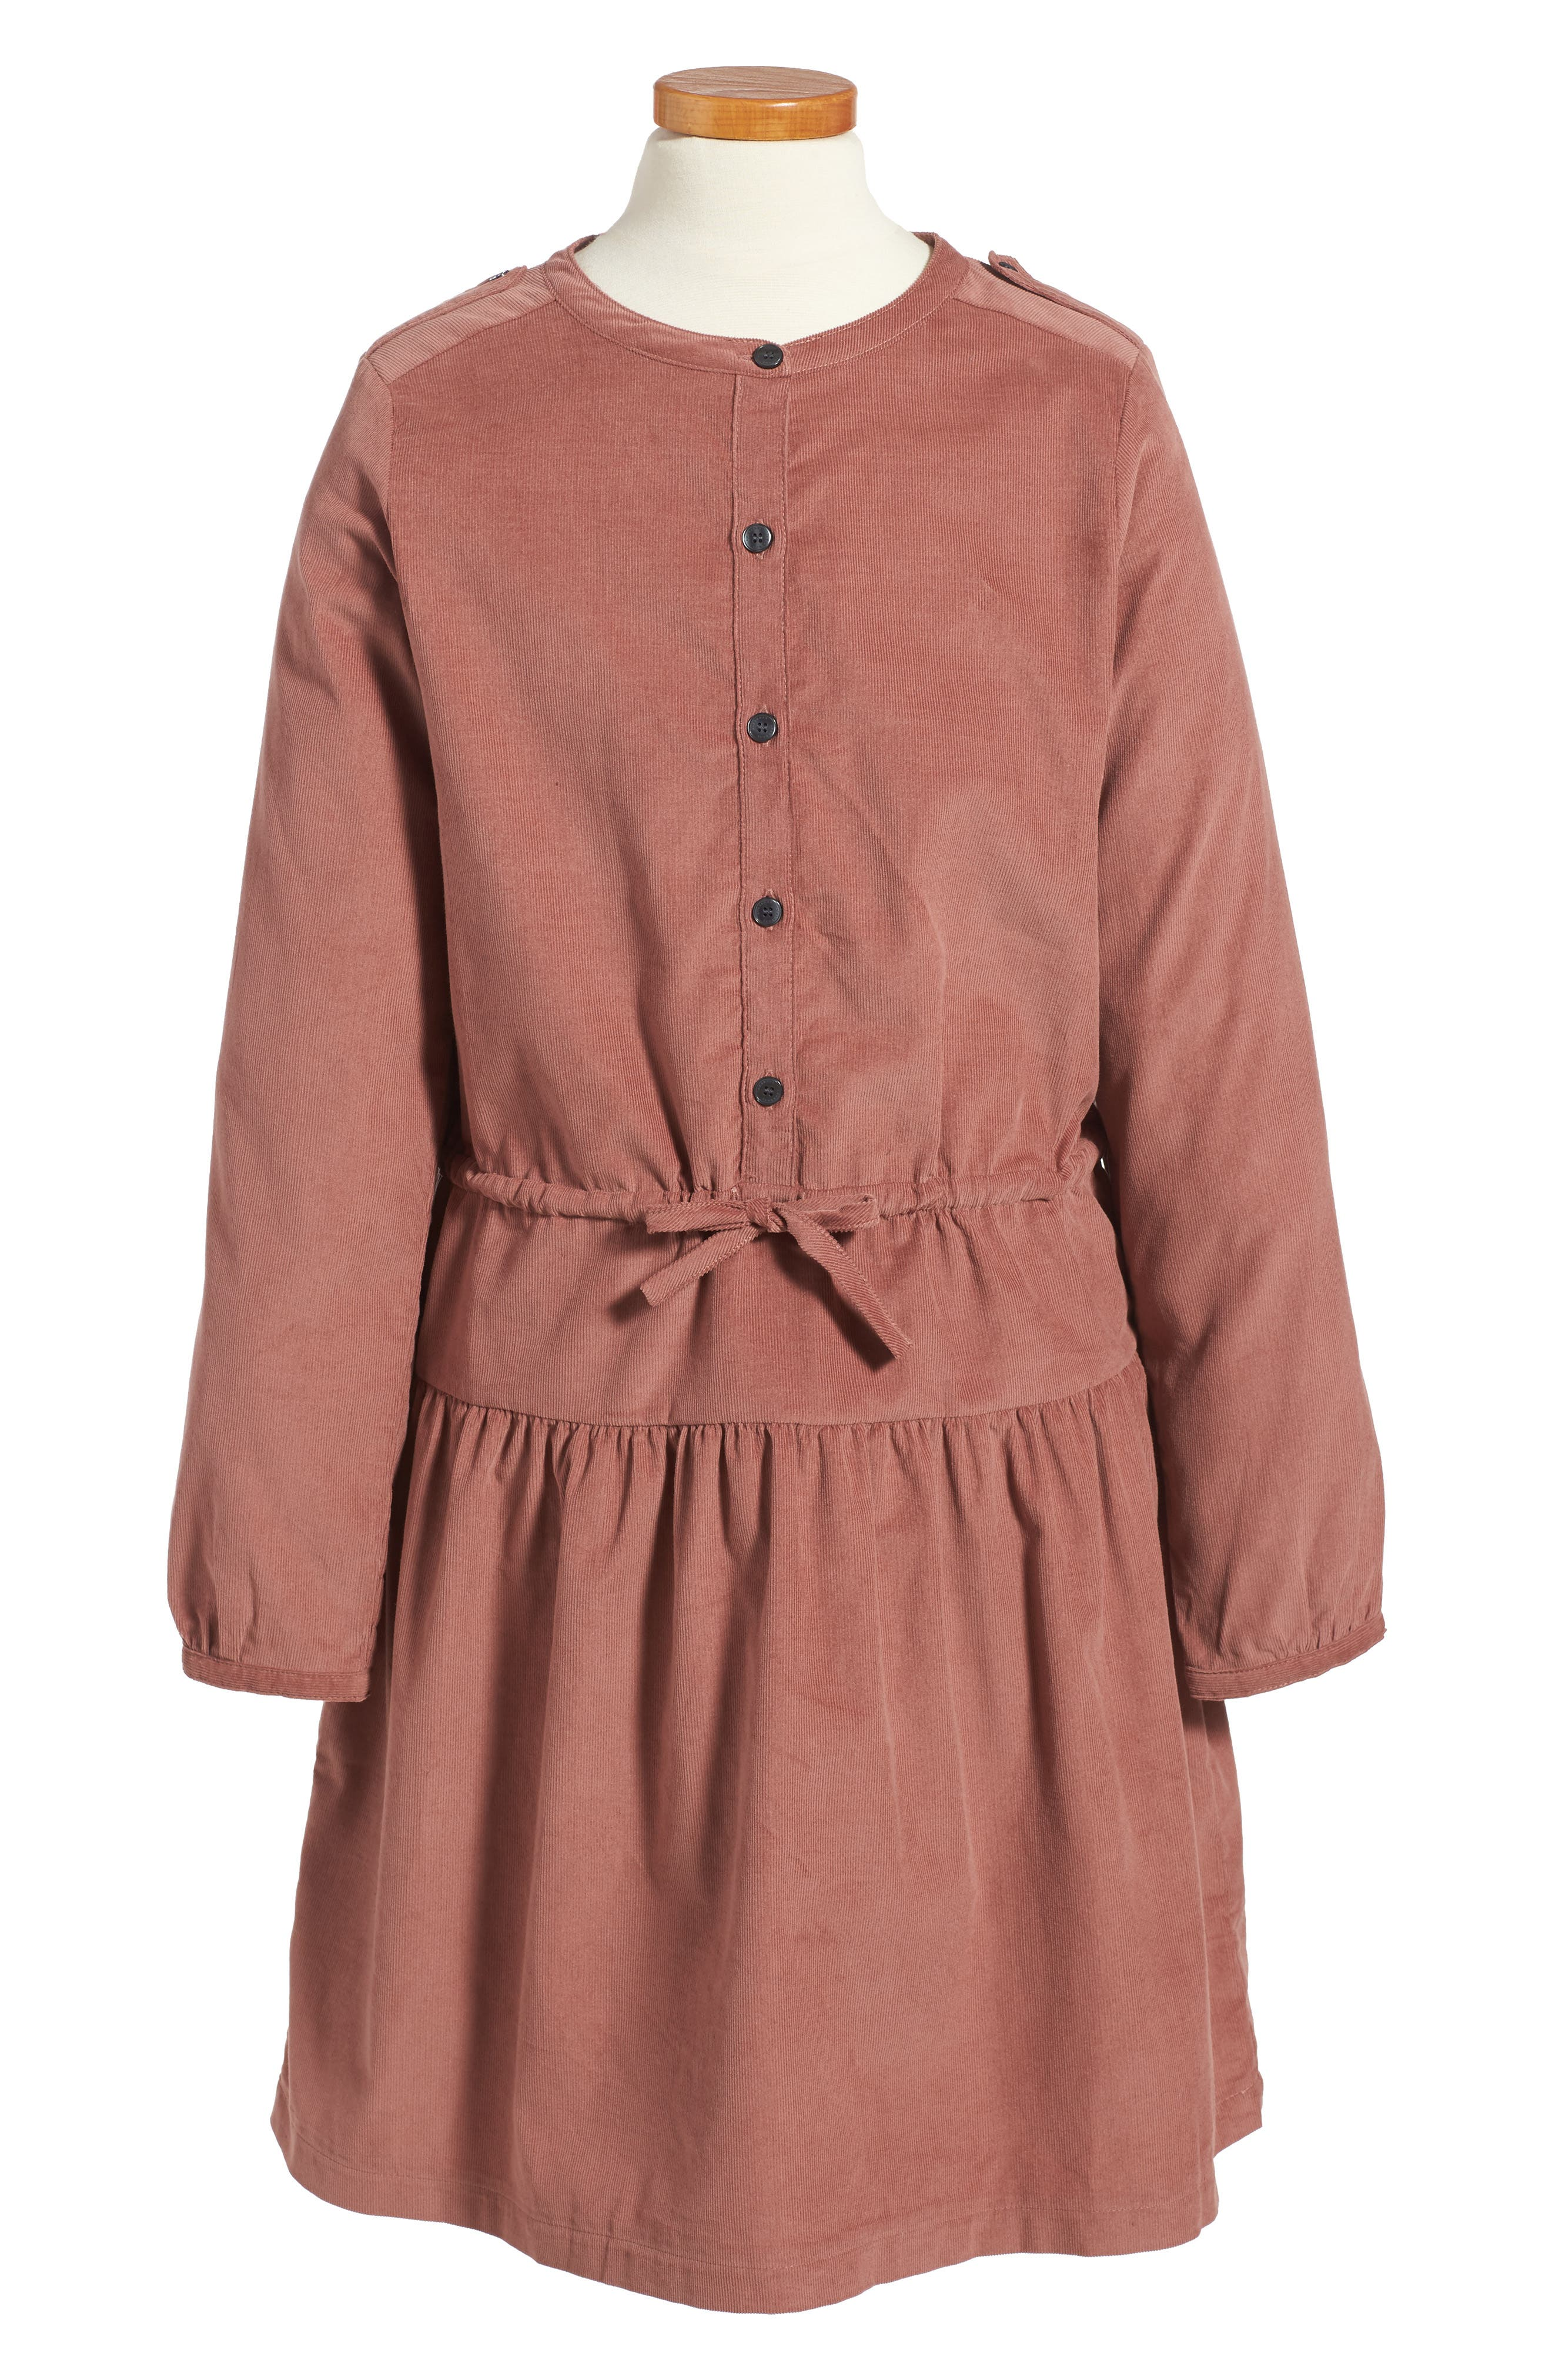 Burberry Celestine Corduroy Dress (Little Girls & Big Girls)